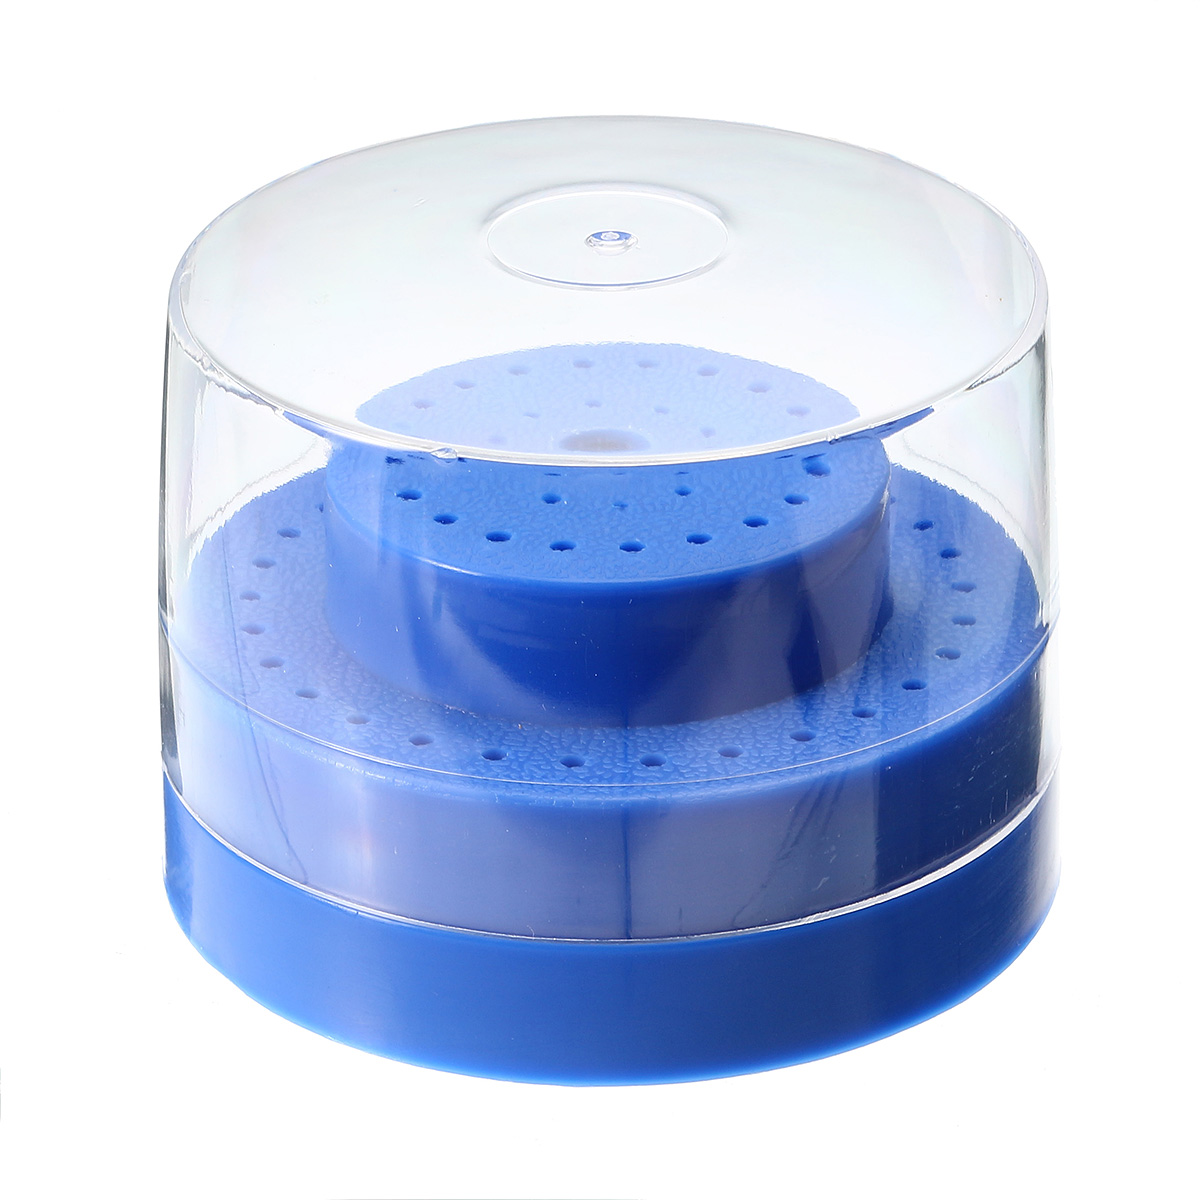 60 Holes Slots Round Plastic Bur Holder Burs Block Case Box Diamond Bur Grinding Head Holder Blue Dental Lab Instrument